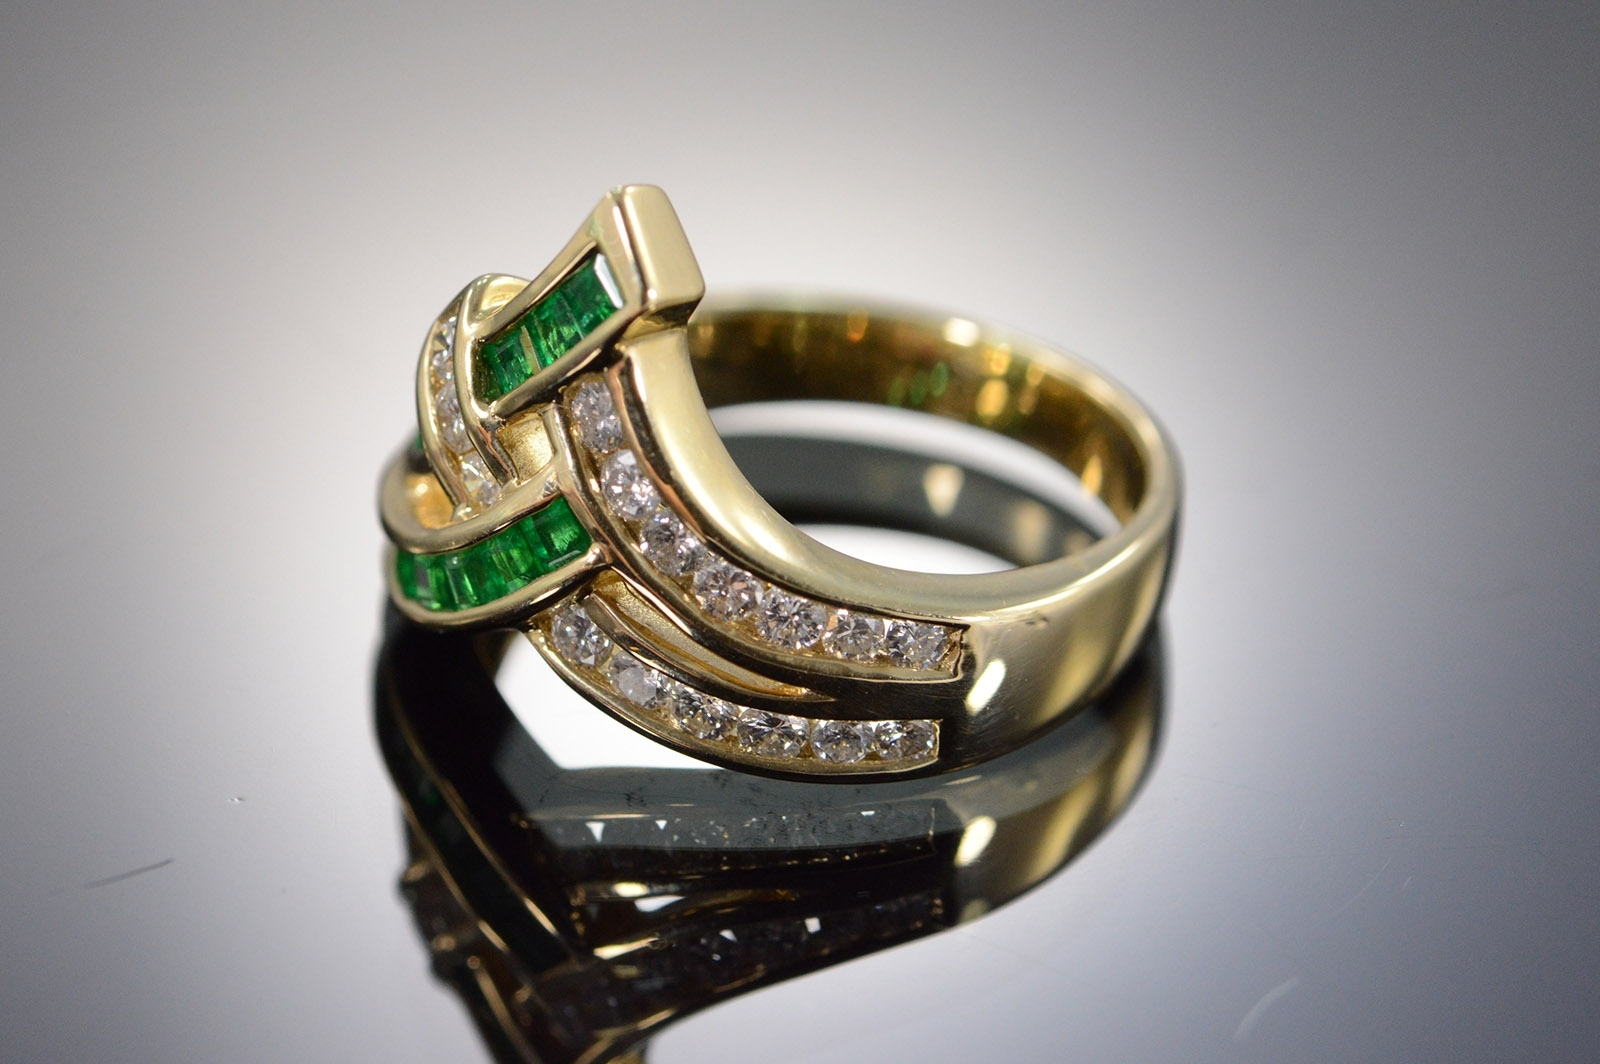 14K 5G 0.75 Ctw Diamond Emerald Chevron Yellow Gold Ring, Size 7 Pertaining To Most Current Chevron Emerald Rings (Gallery 9 of 15)